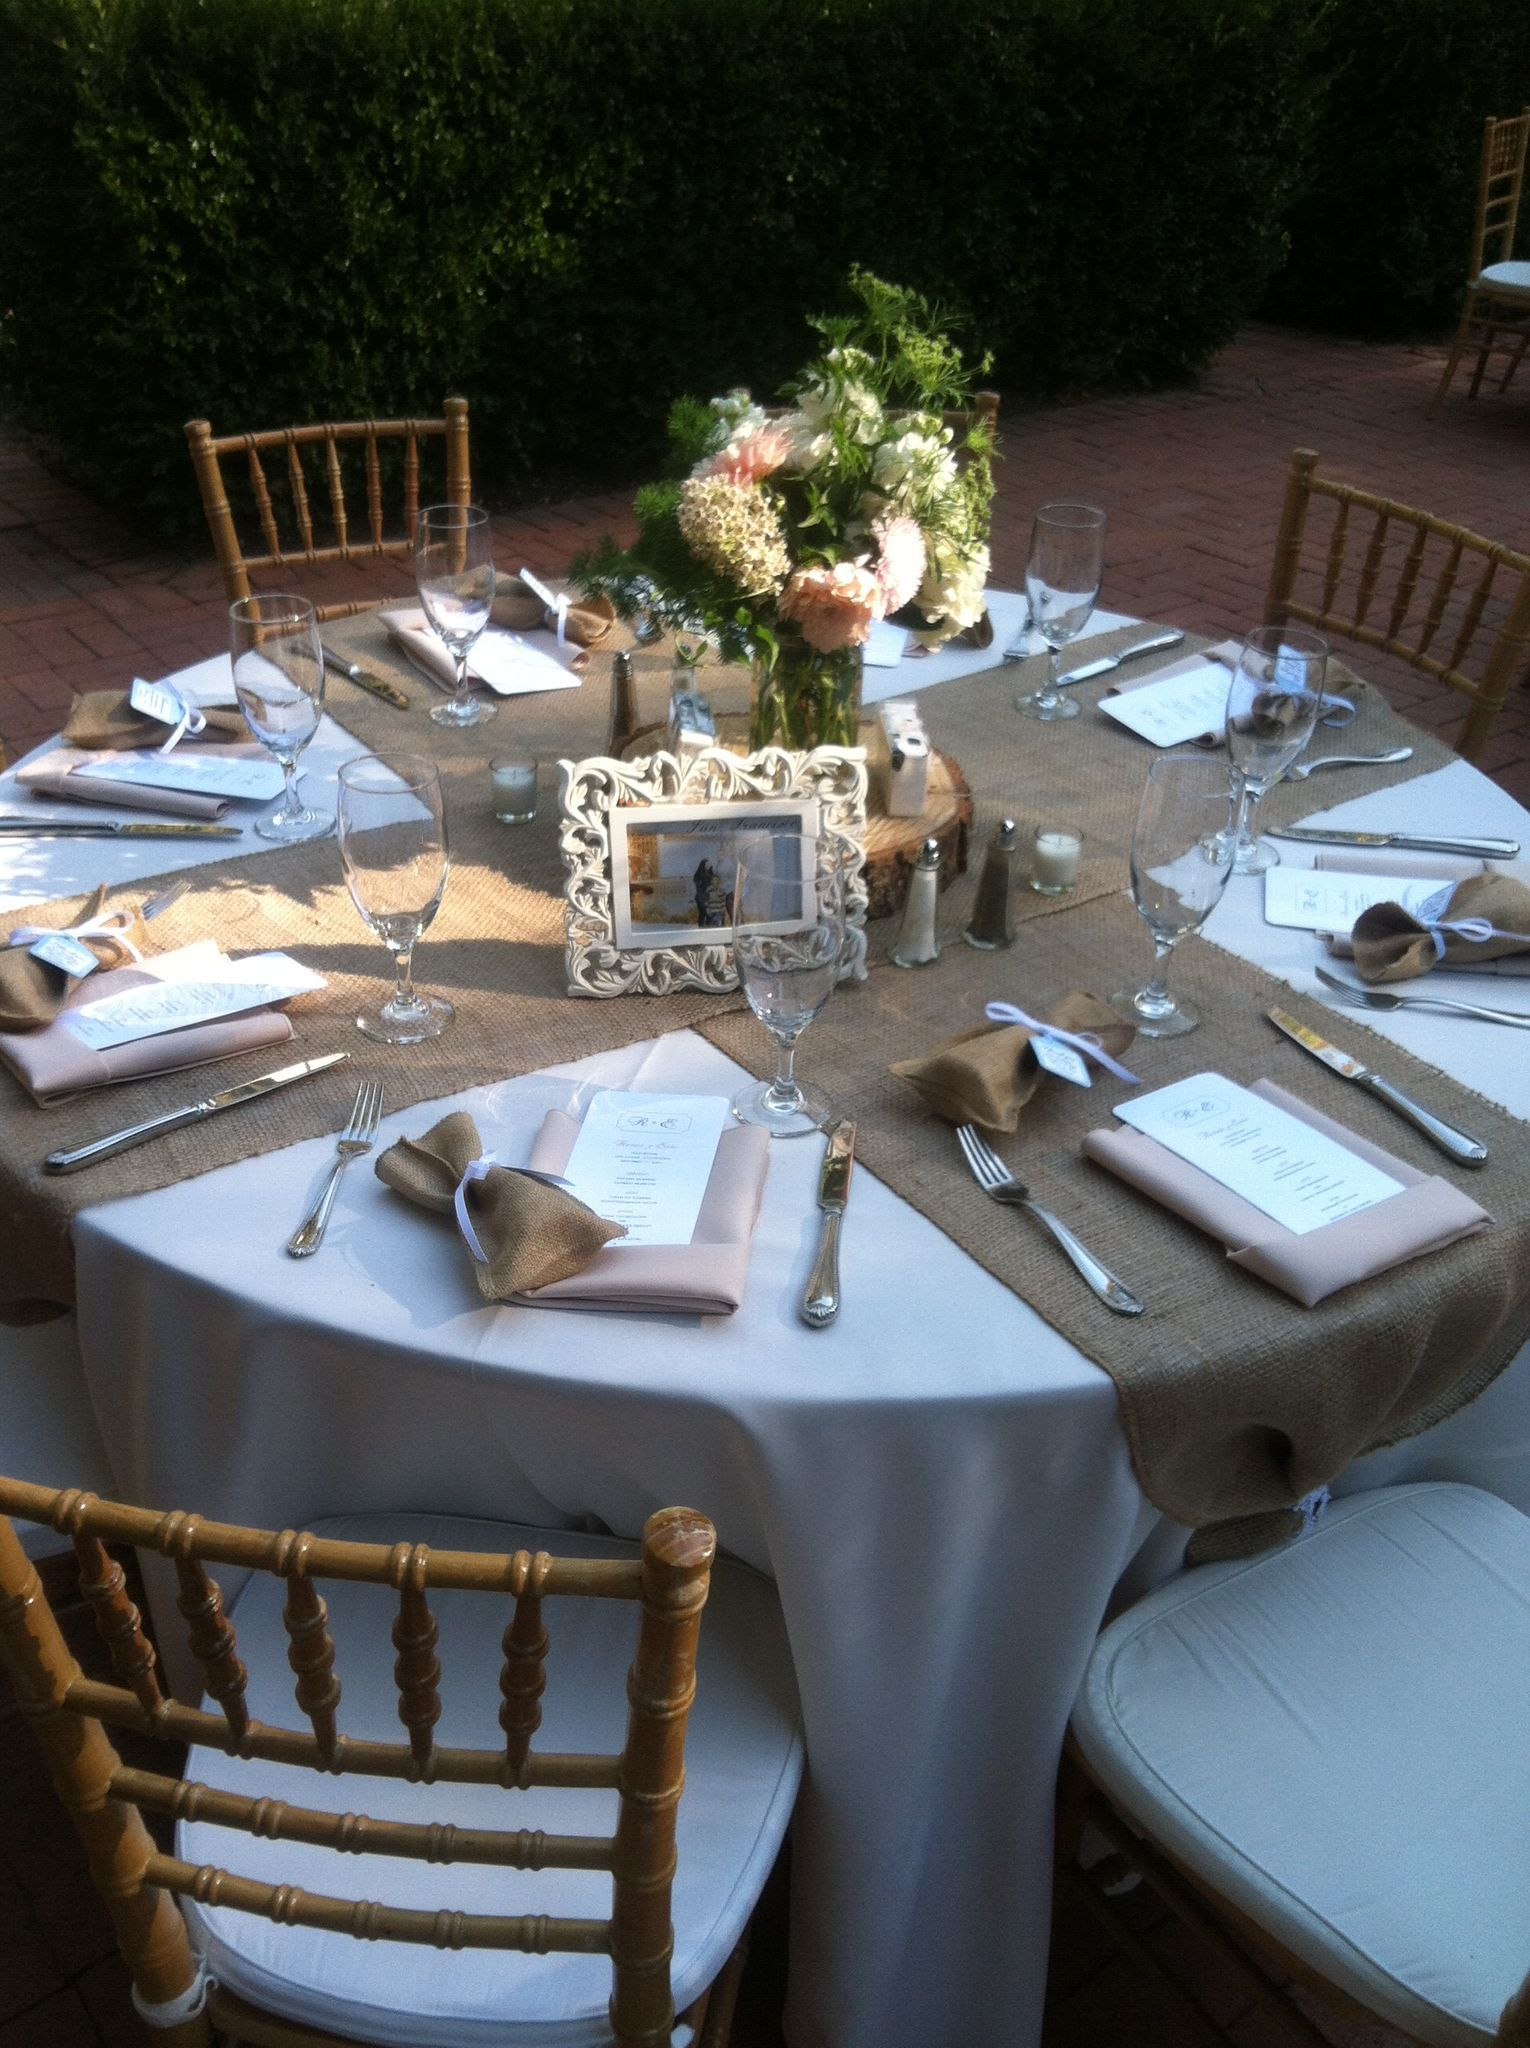 68 Loveable Outdoor Christmas Table Settings Ideas Rehearsal Dinner Decorations Rustic Wedding Table Table Runners Wedding